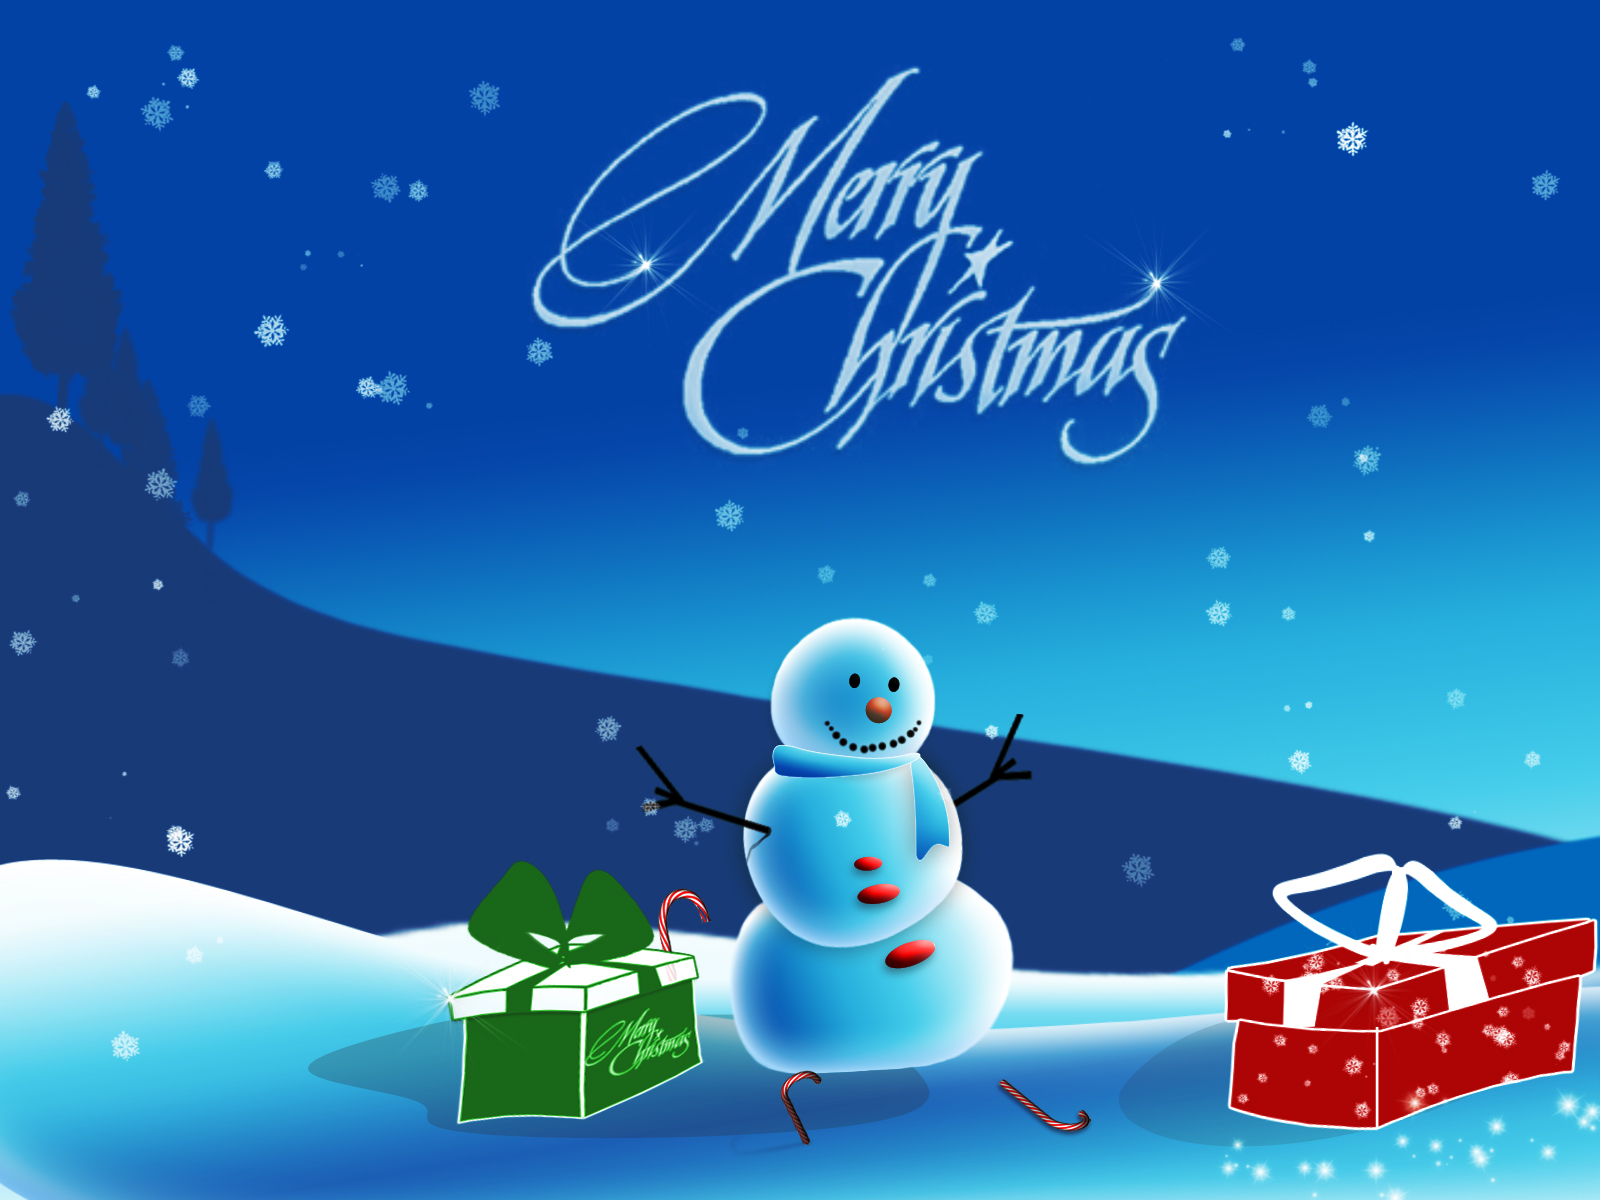 https://3.bp.blogspot.com/-XDhFDRJSvhI/TnnPo3CgSyI/AAAAAAAAAq0/h2mTHkf_3wg/s1600/wallpaper-gifts_for_snowman.jpg